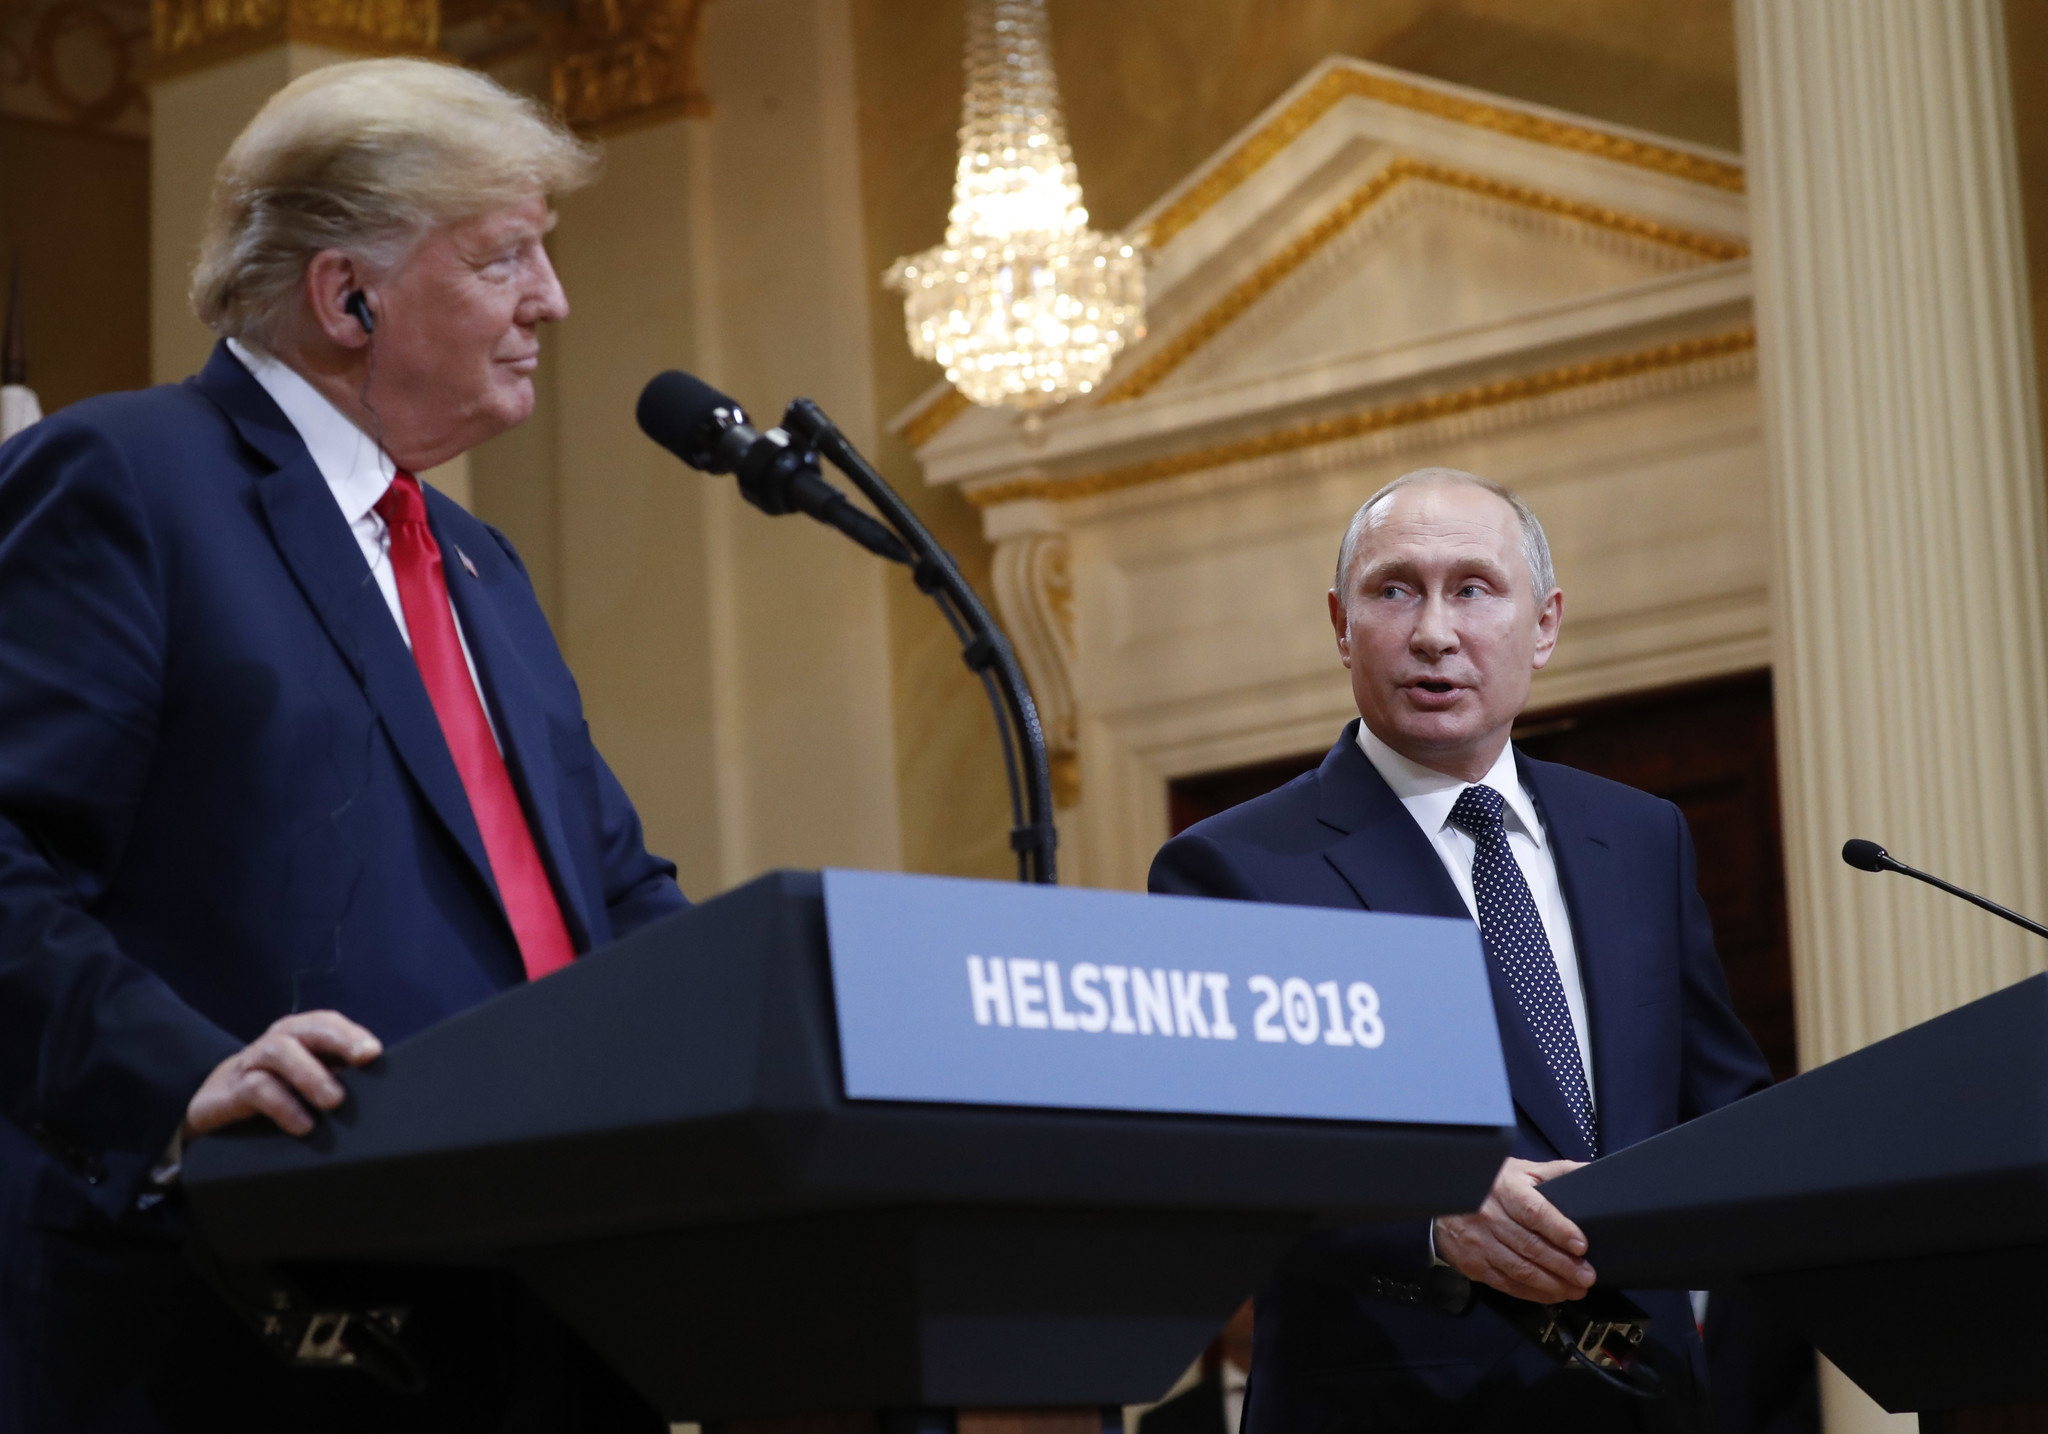 'Very much counter to the plan': Trump defies advisers in embrace of Putin | San Diego Union Tribune